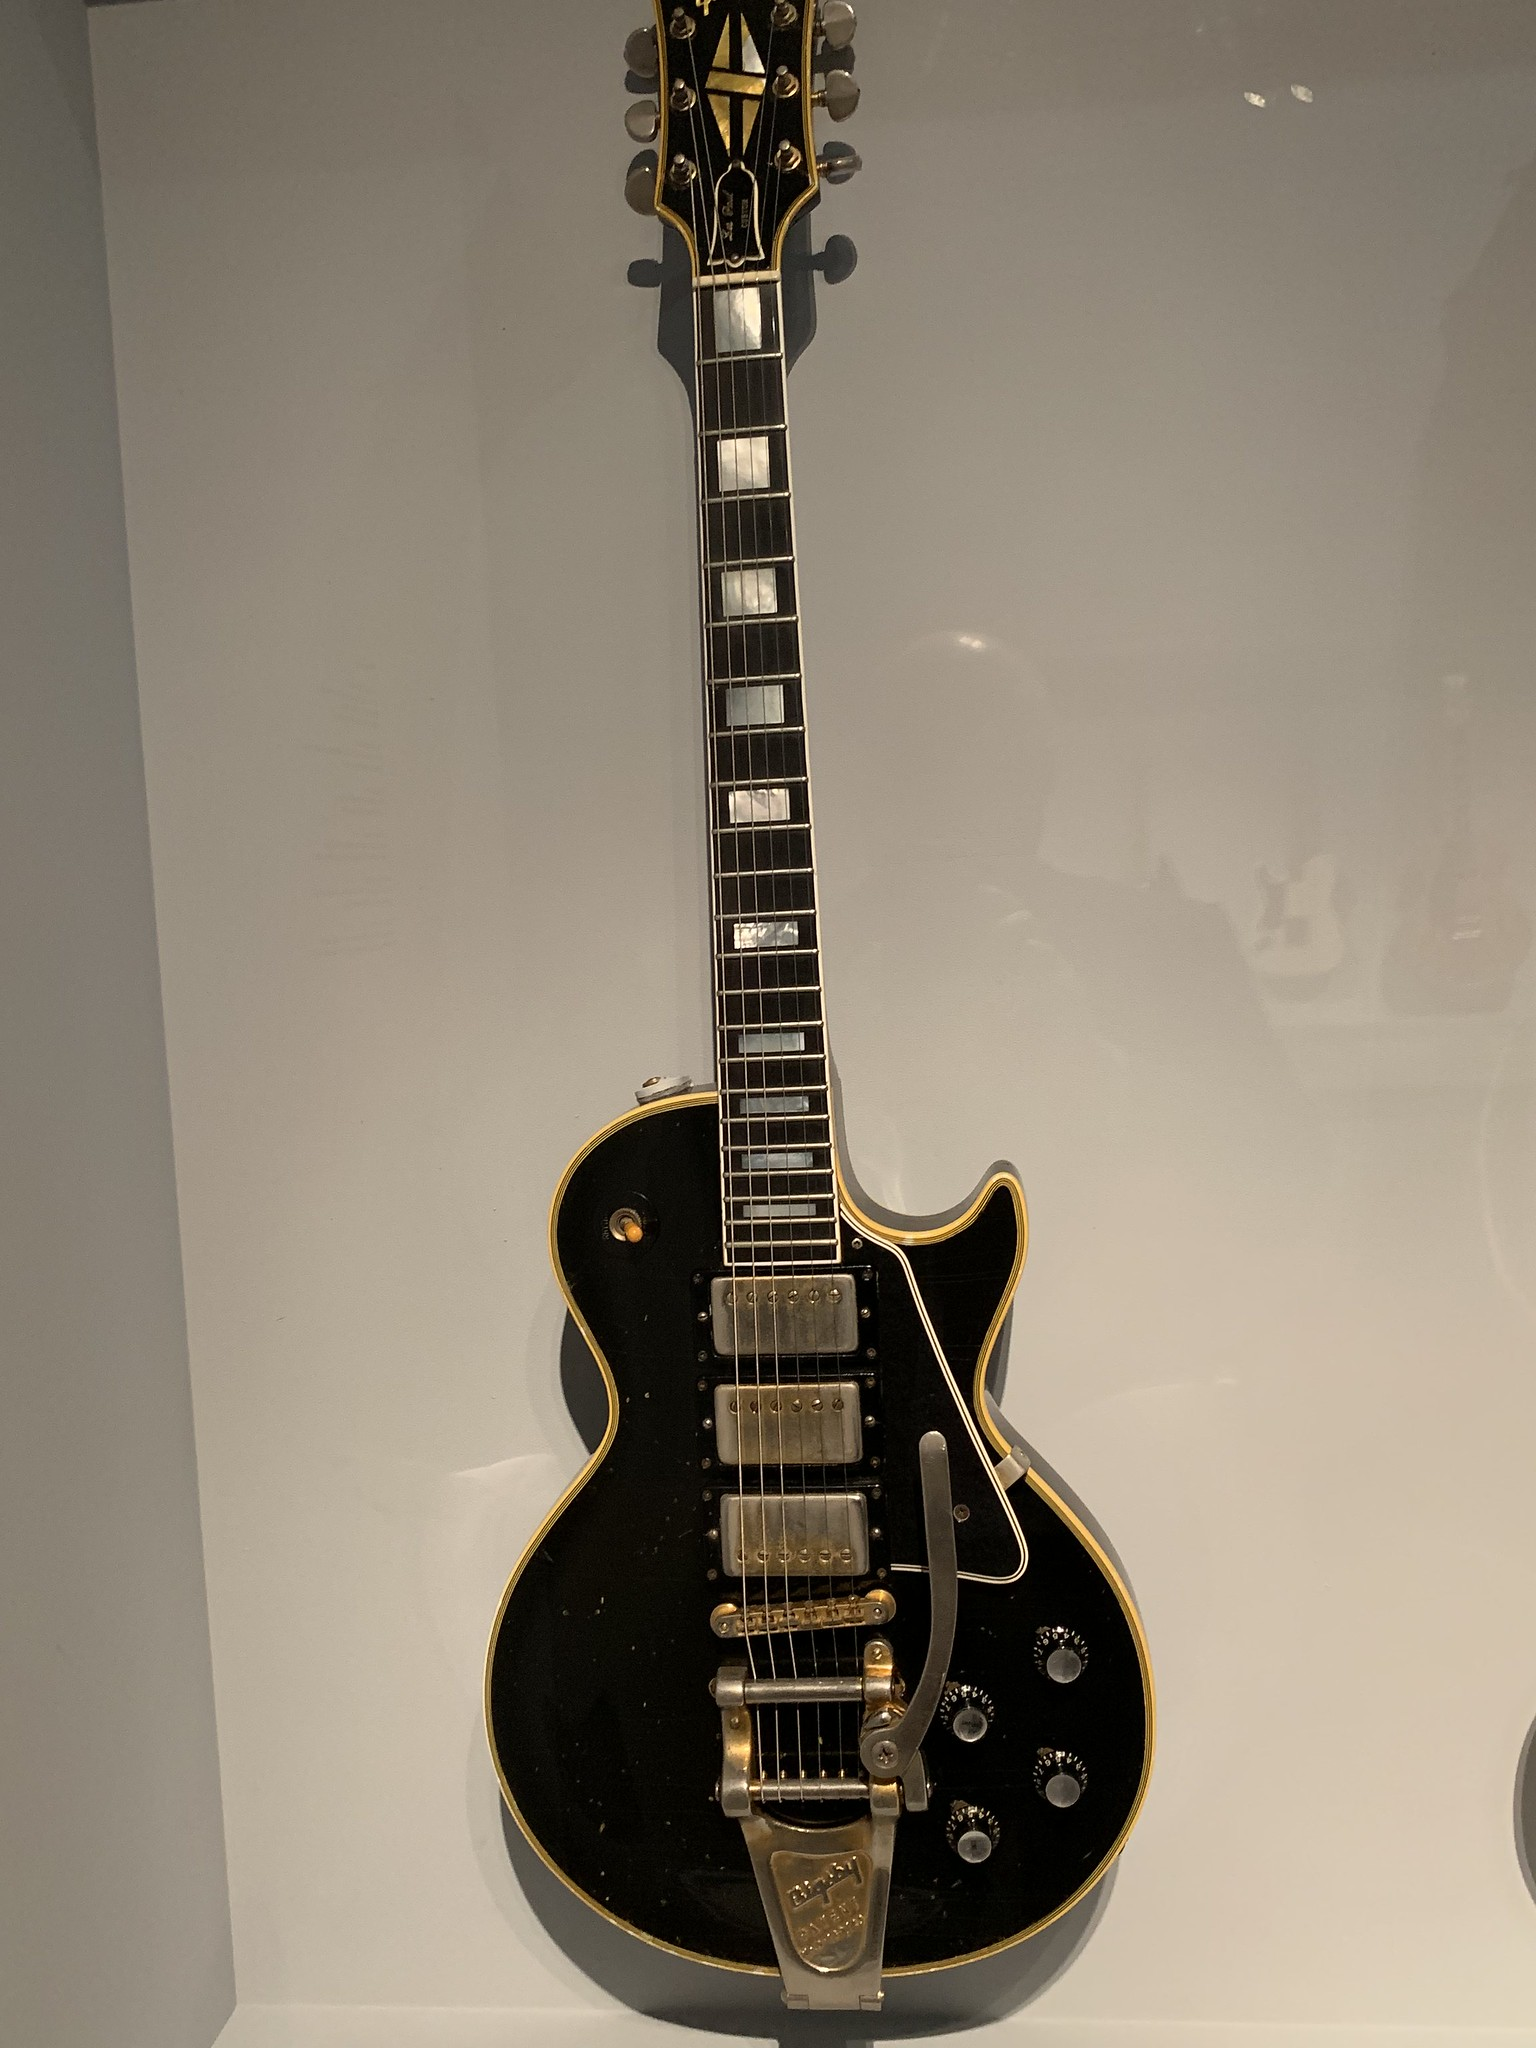 Jimmy Page S Guitars : here are the first photos of jimmy page 39 s returned 39 black beauty 39 guitar which was stolen in ~ Russianpoet.info Haus und Dekorationen